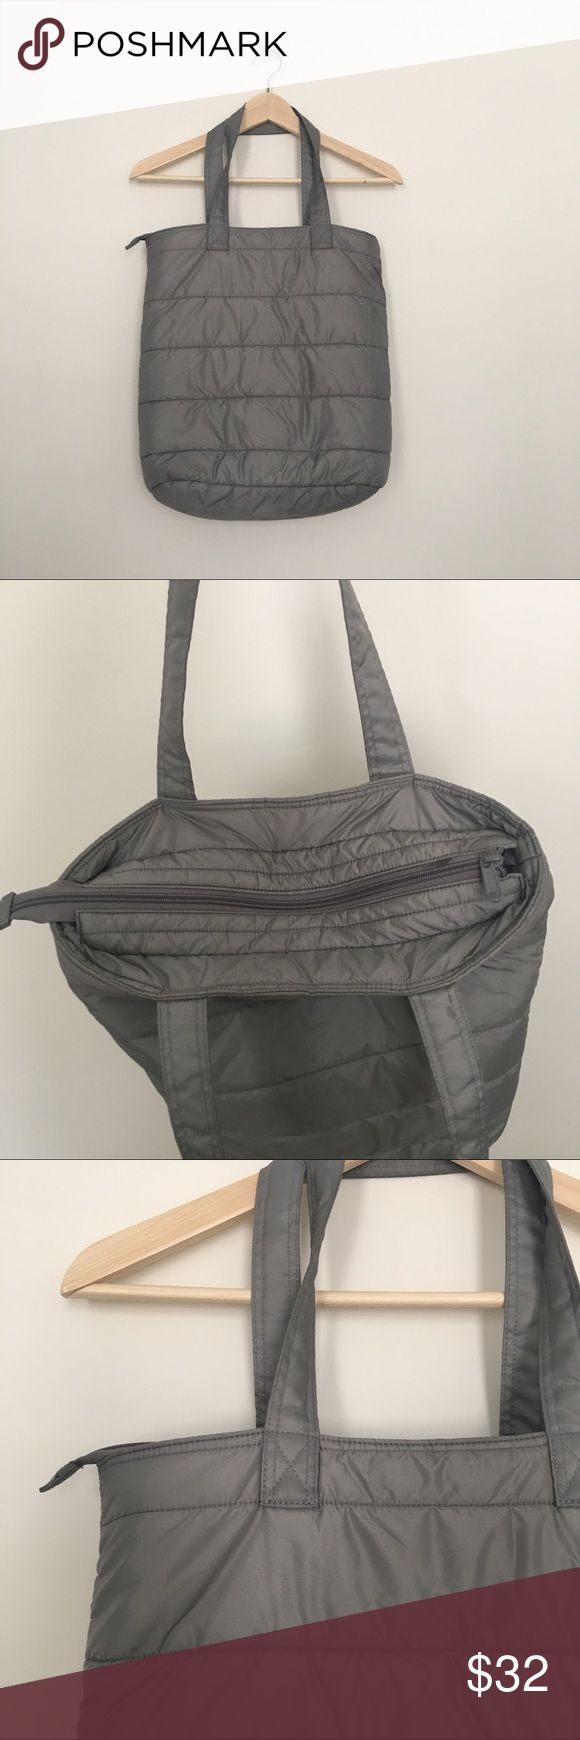 Uniqlo NWOT grey down insulated tote bag Wear your comfy down as a bag in the summer and have an instant pillow wherever you choose to lounge 👍 Uniqlo Bags